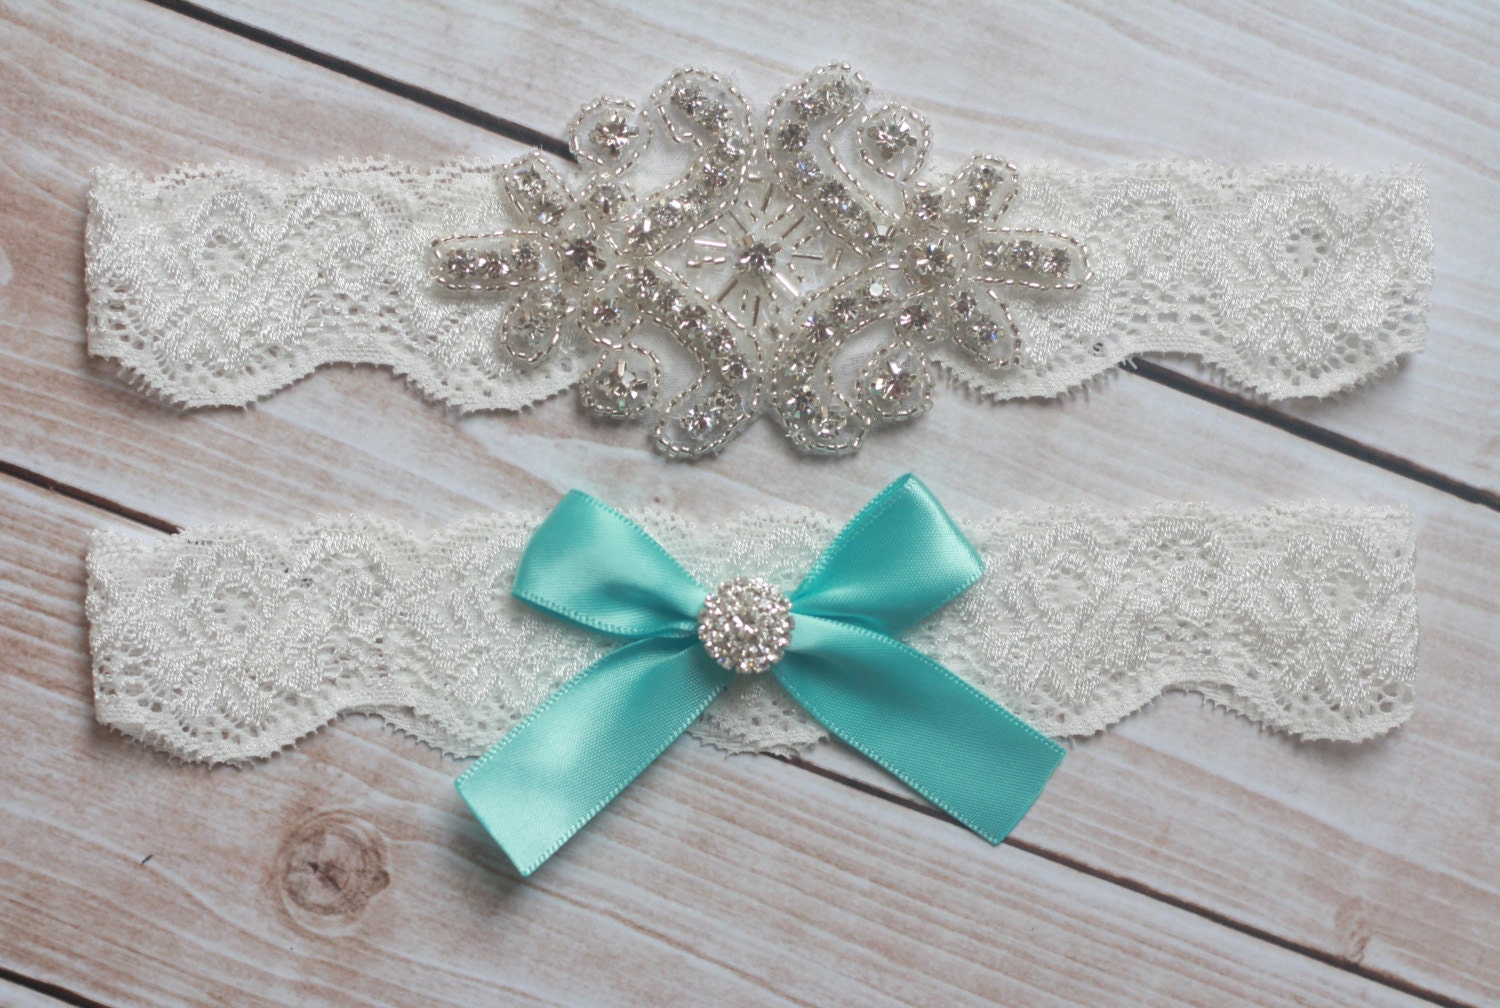 Tiffany Blue Wedding Garter - Aqua Rhinestone and Crystal Garter - Ivory Lace